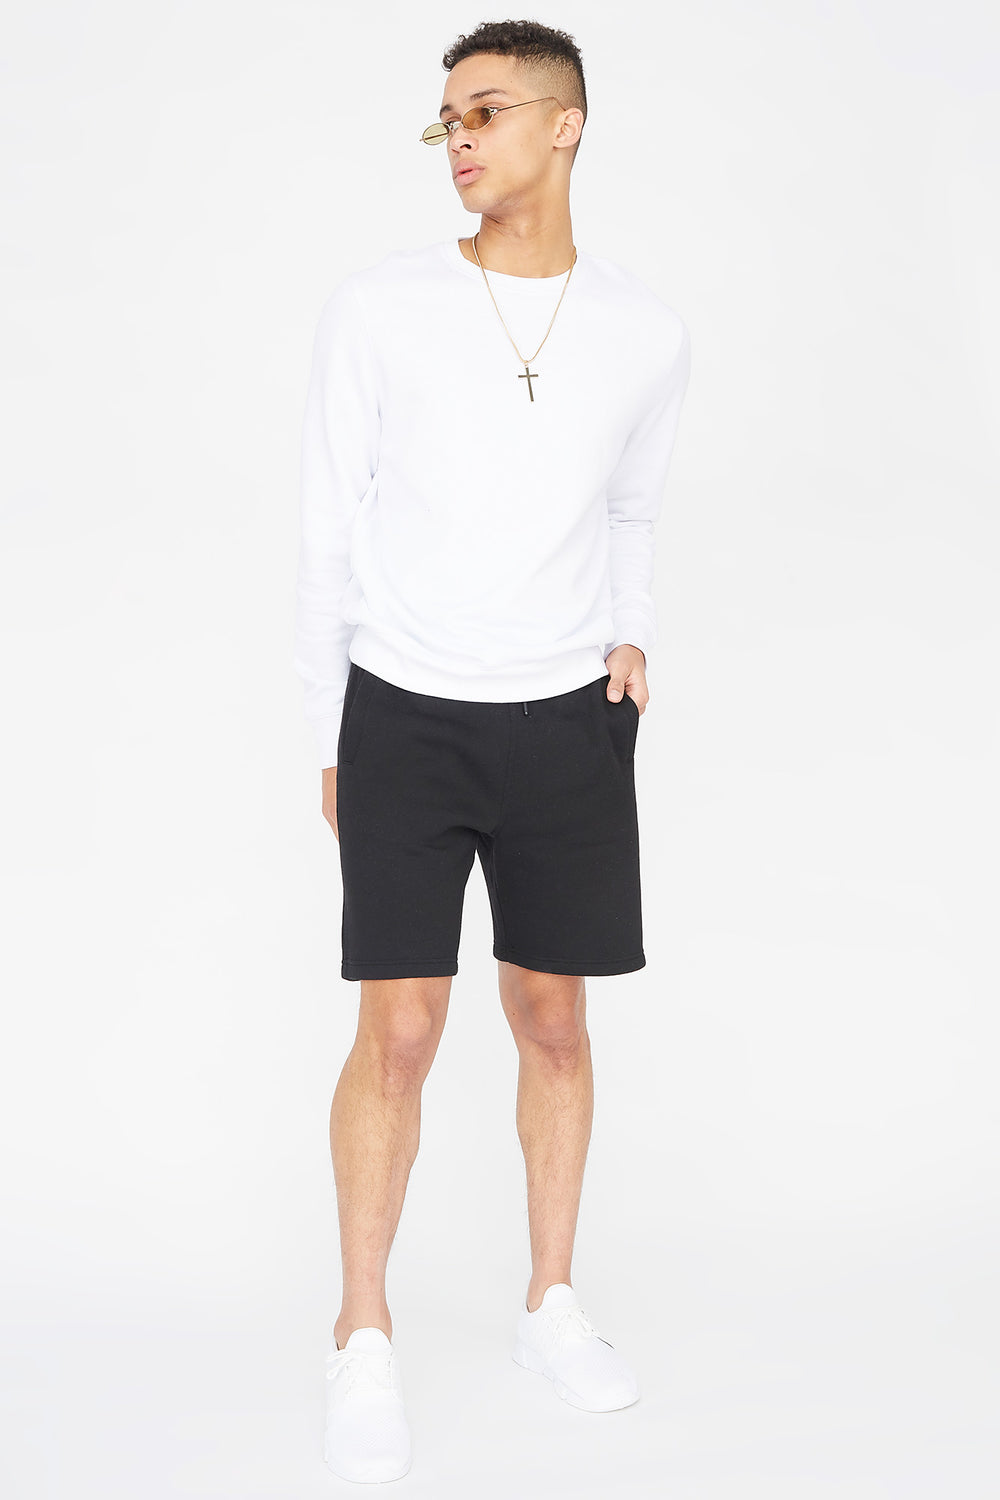 Fleece Everyday Basic Short Black